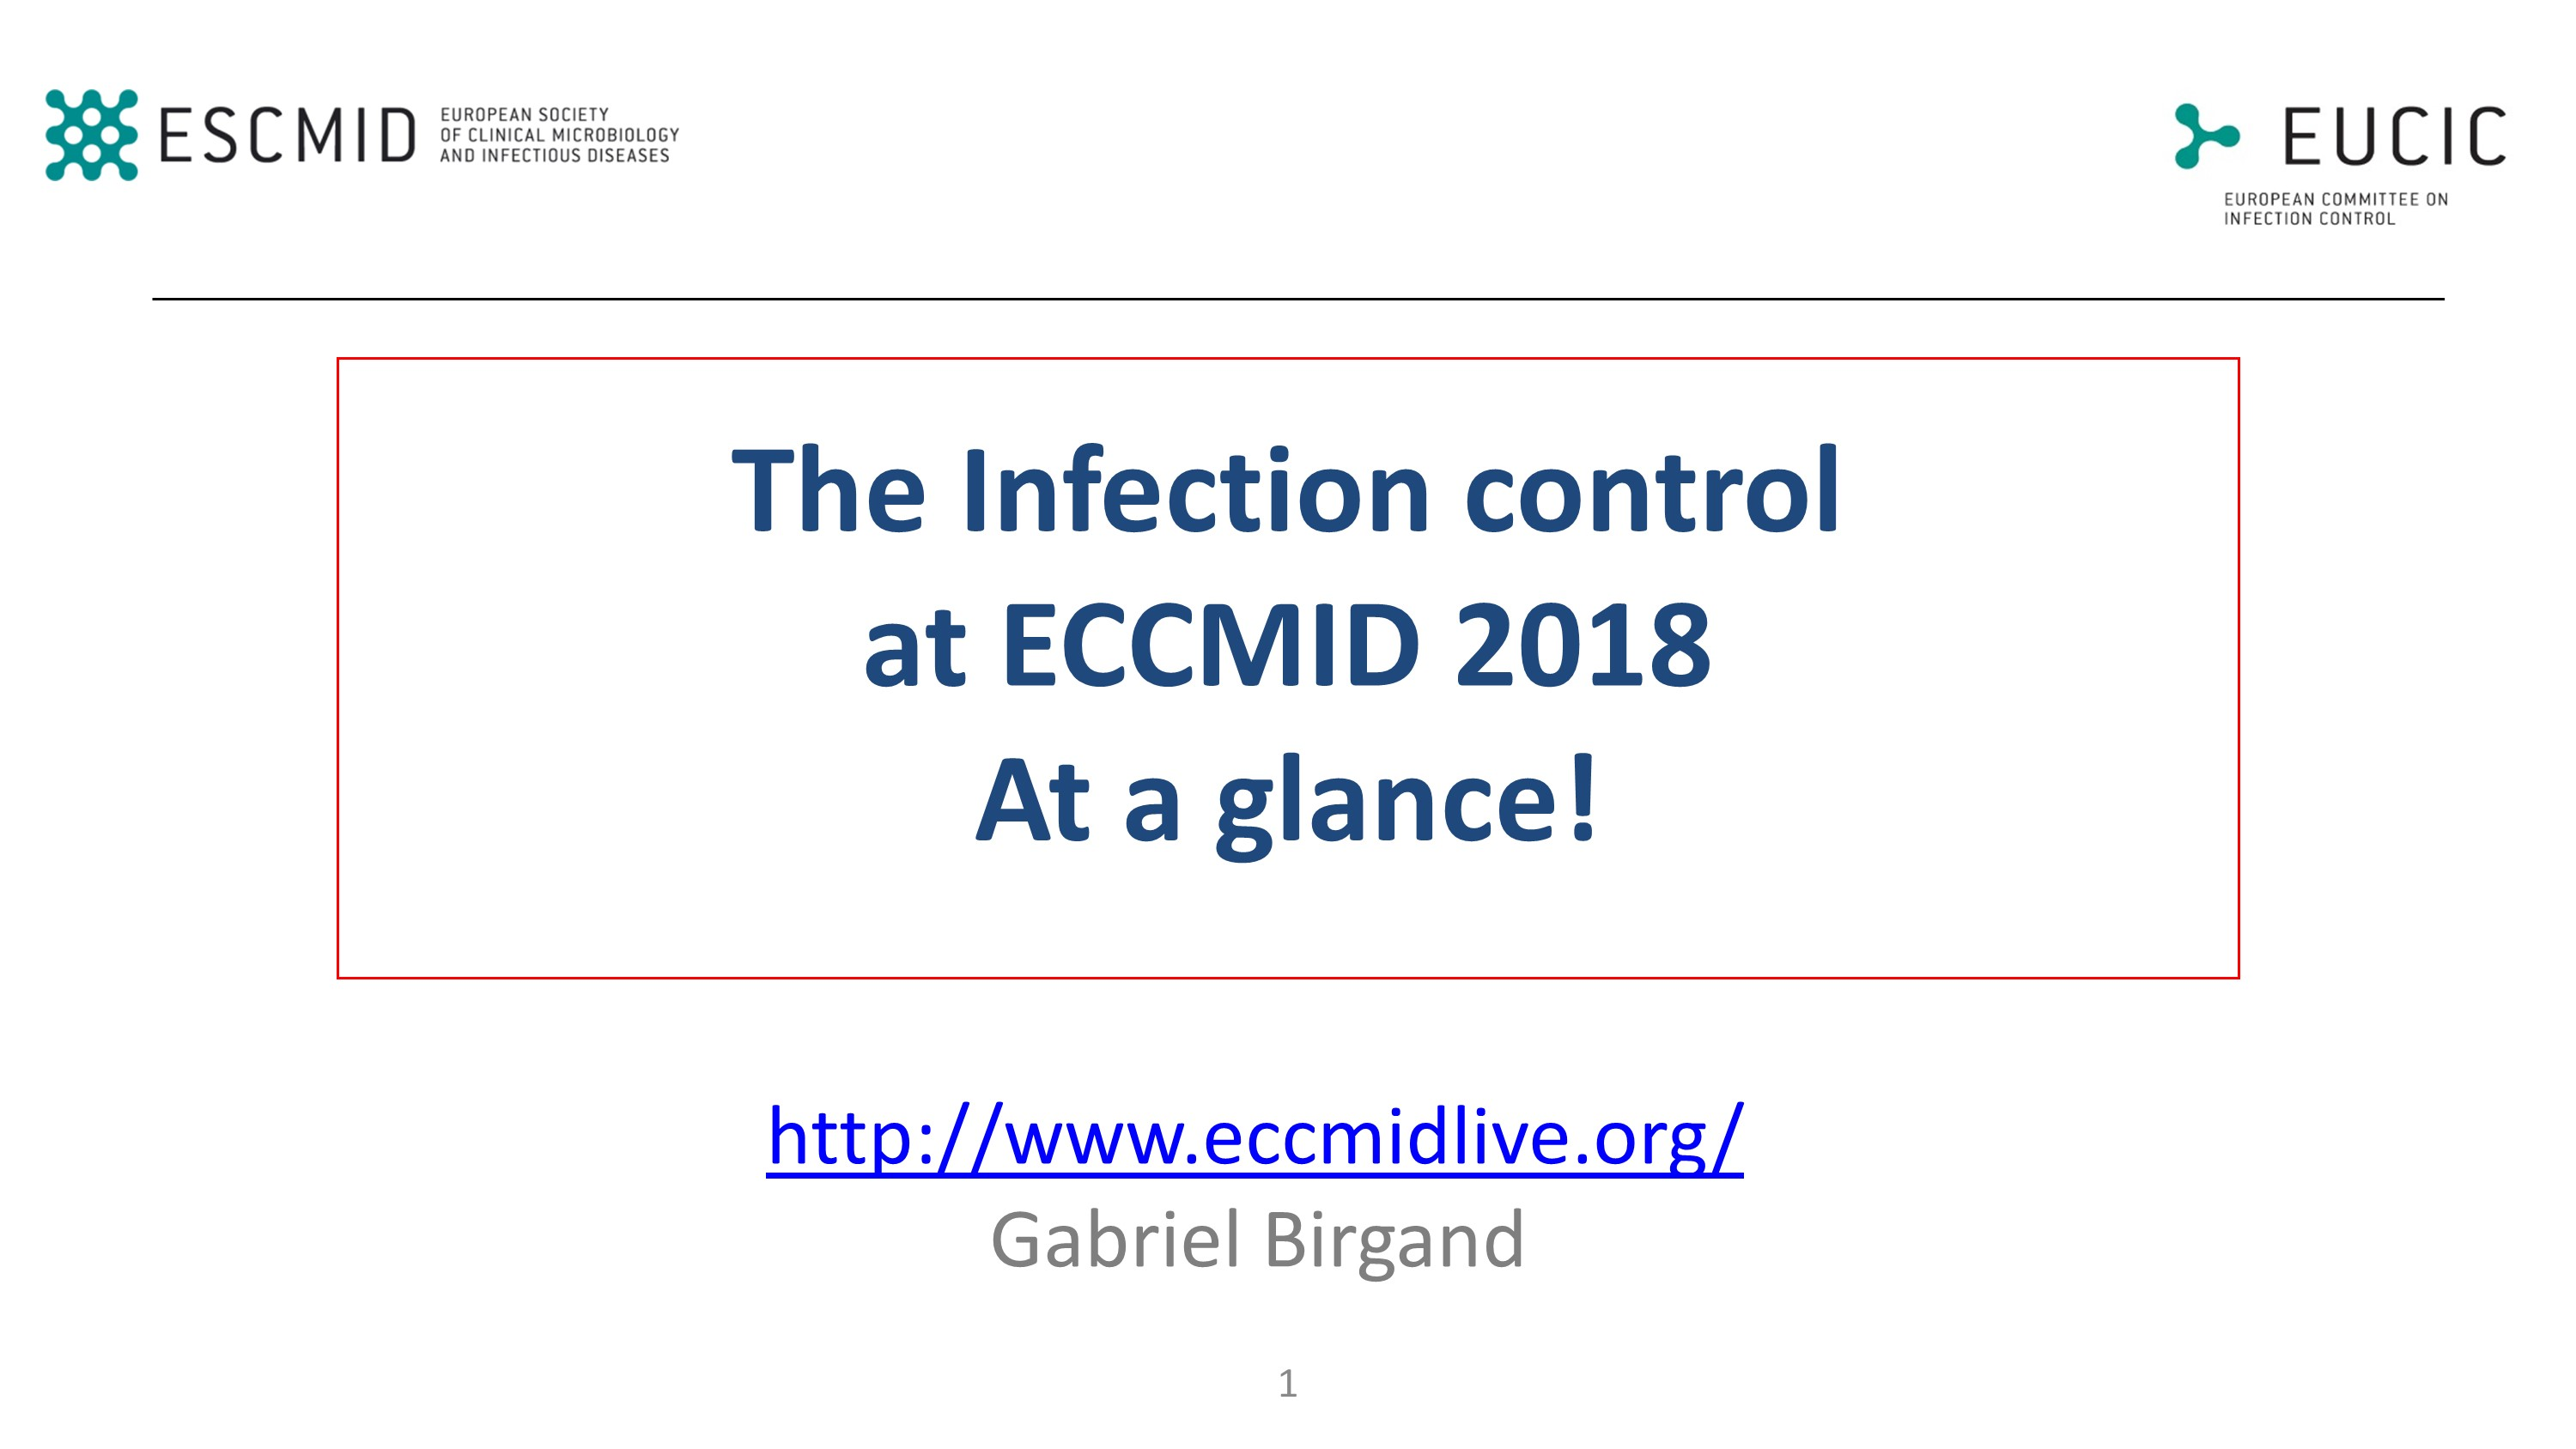 Infection control ECCMID Madrid 2018